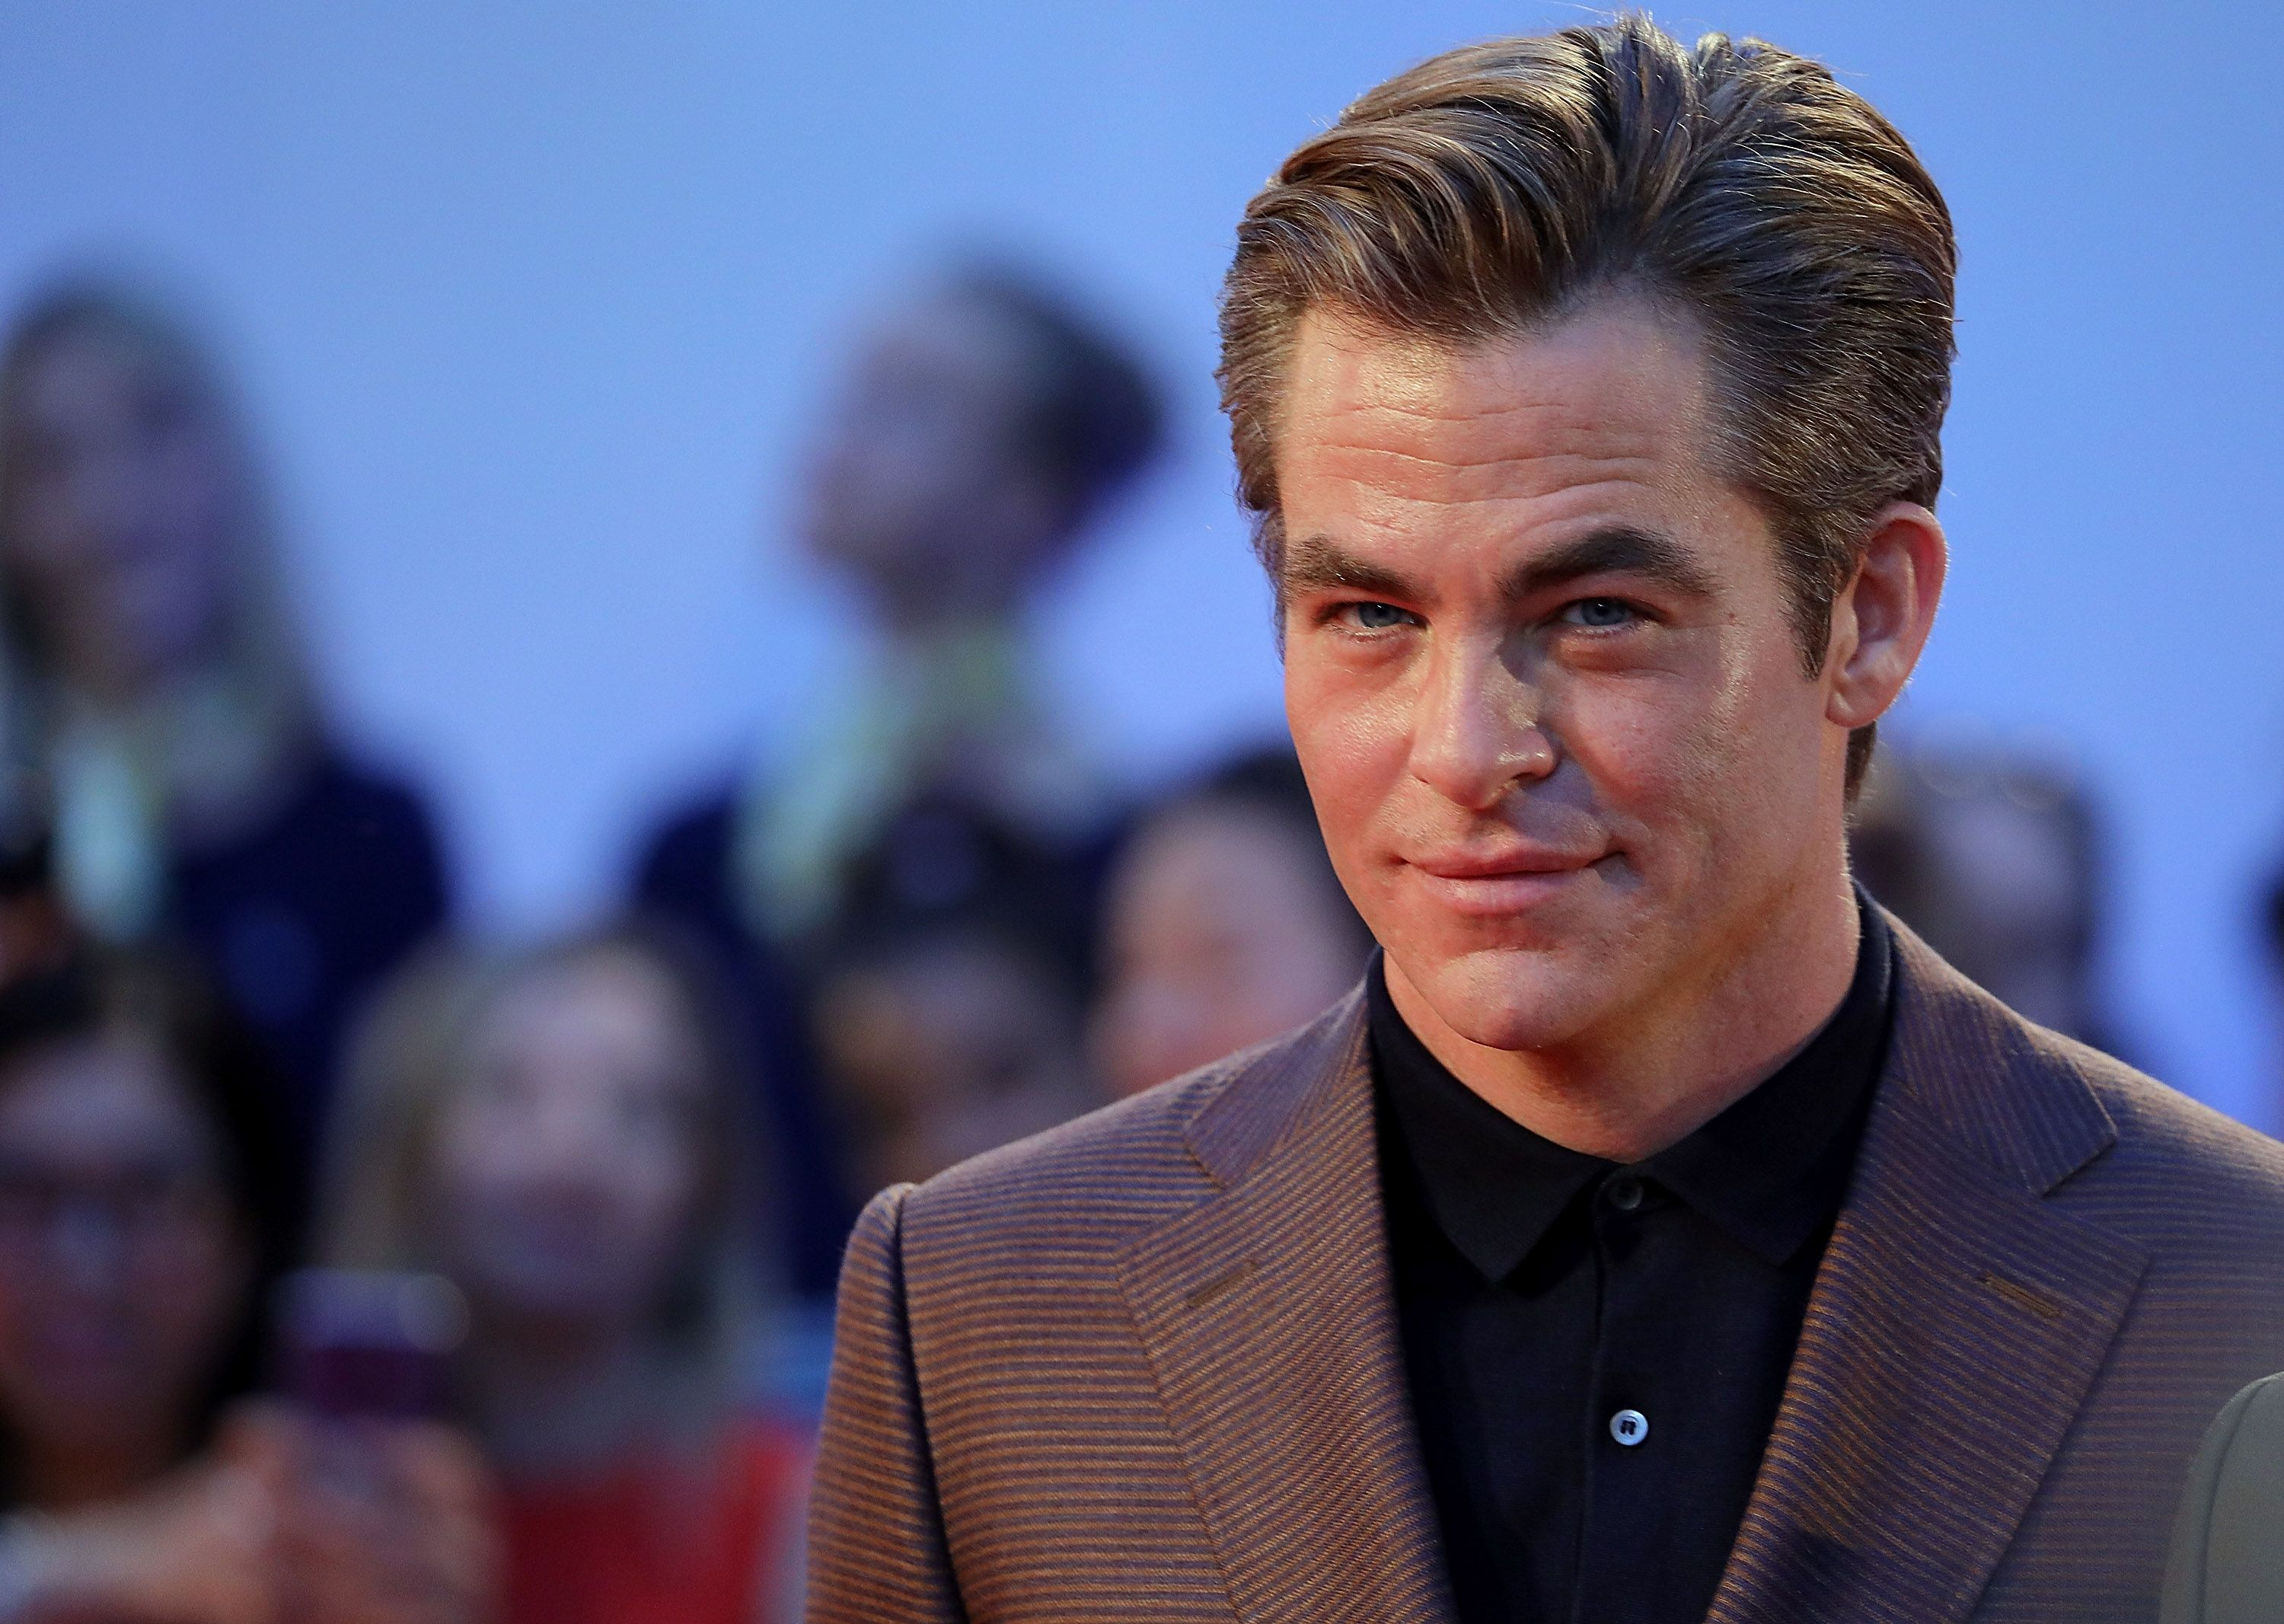 Chris pine plays gay actor